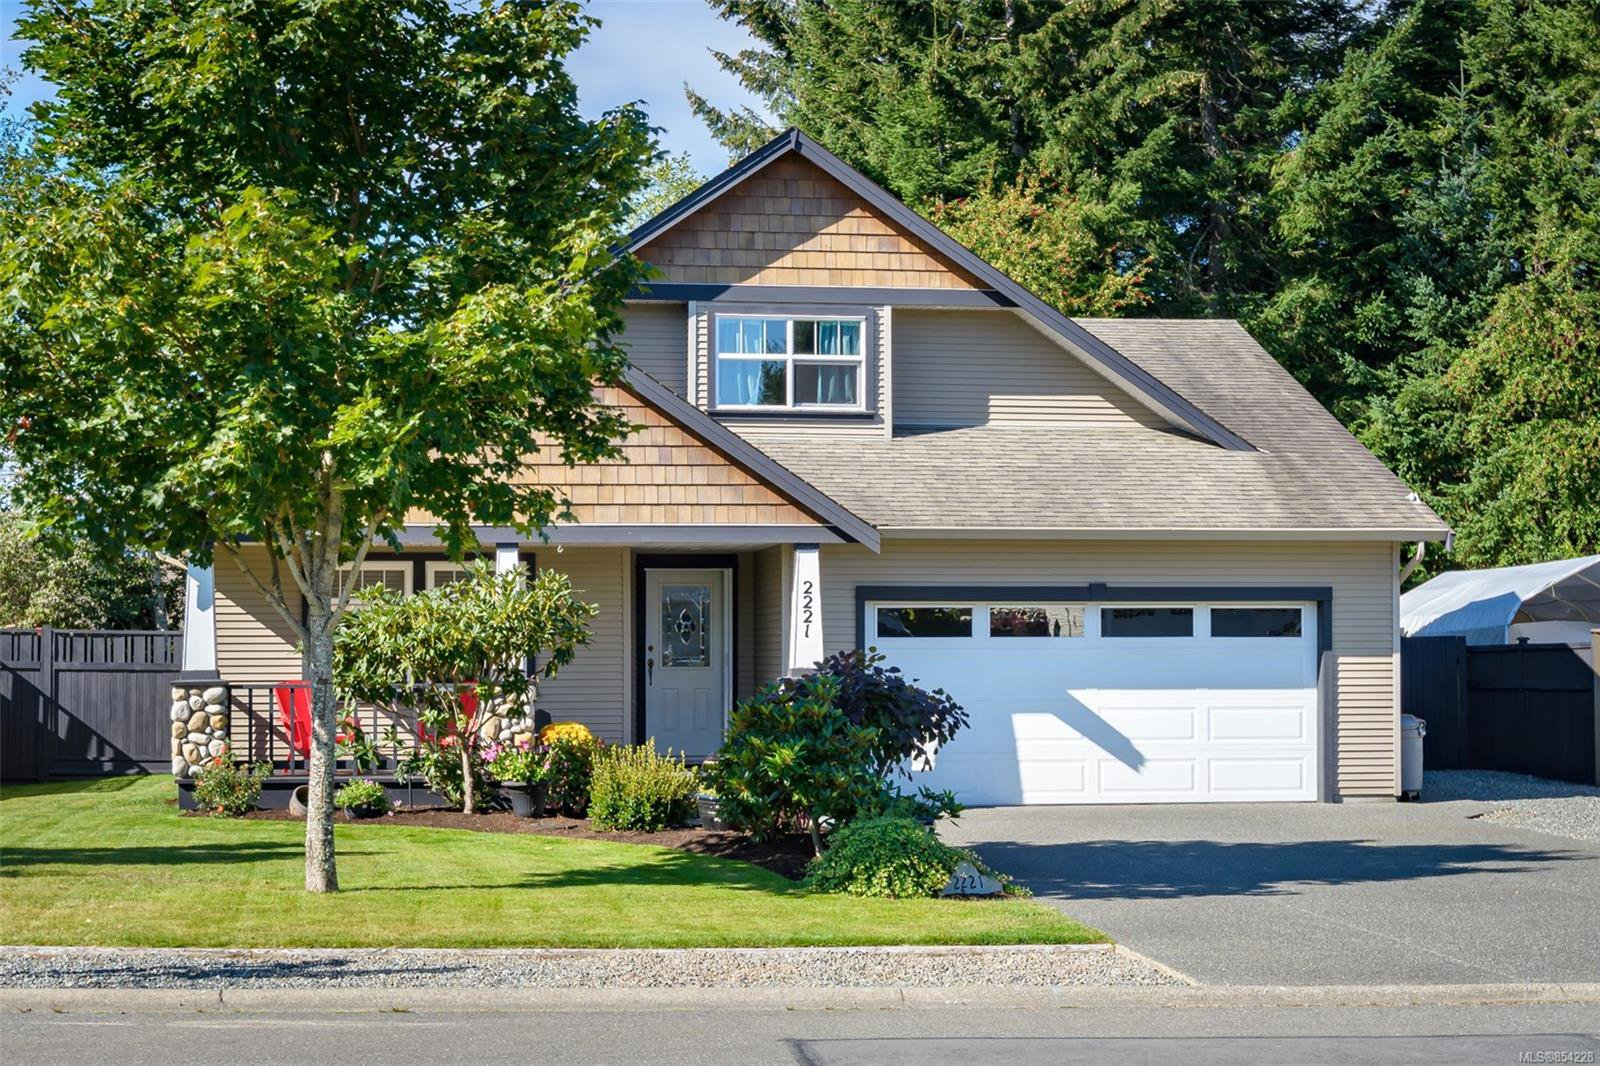 Main Photo: 2221 Whiskey Jack Way in : CV Courtenay East House for sale (Comox Valley)  : MLS®# 854228